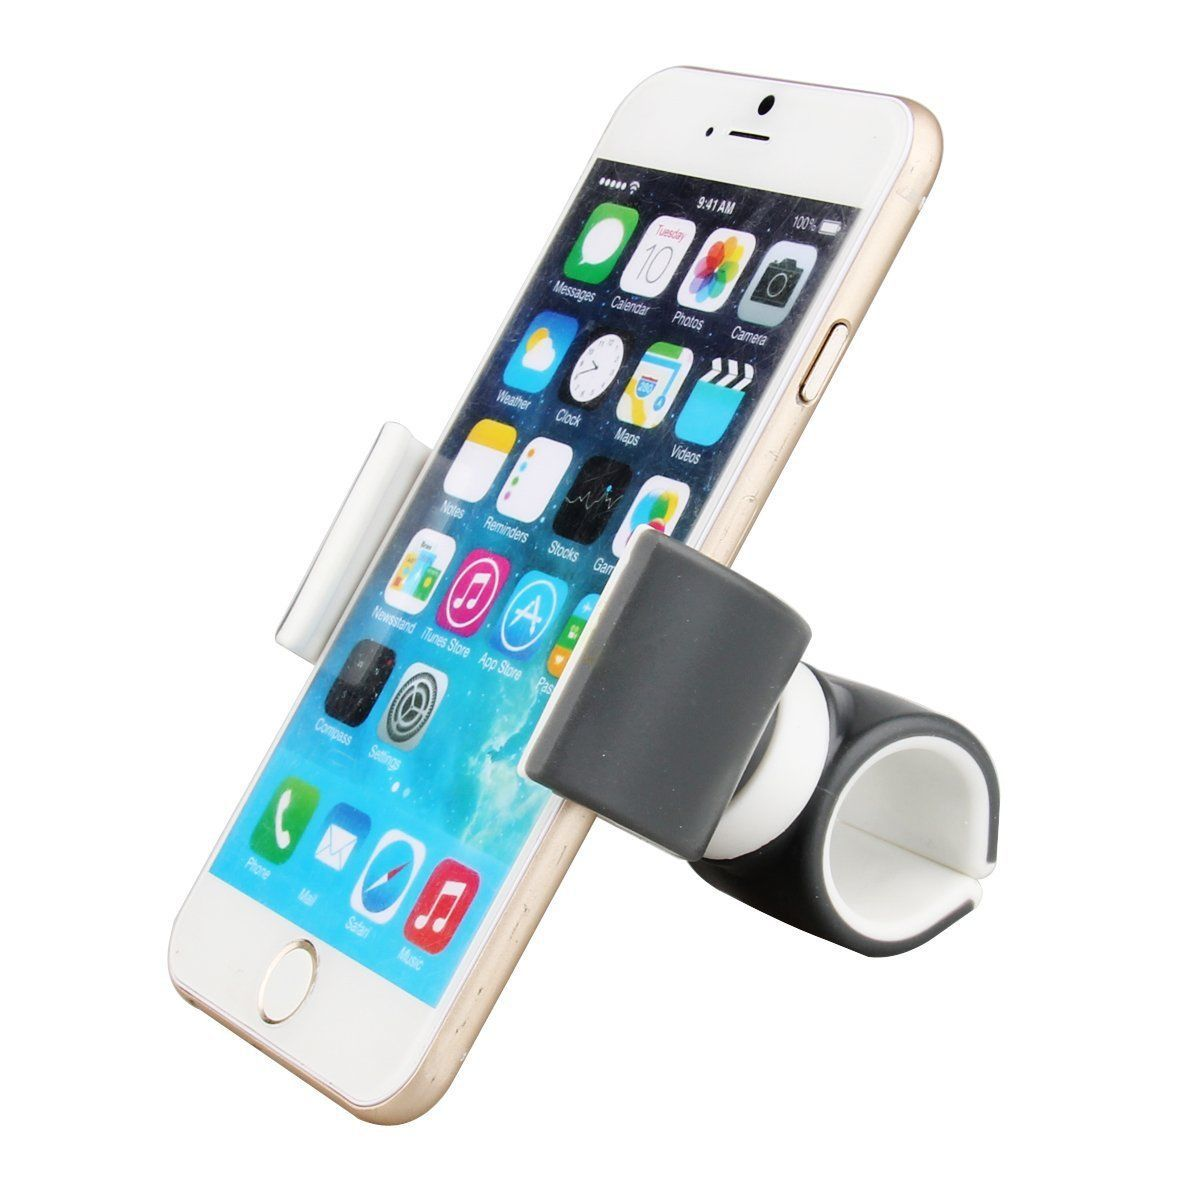 Universal-360-Bike-Bicycle-Motorcycle-Car-Phone-holder-Car-Air-Vent-Mount-for-Iphone-5-6s-2